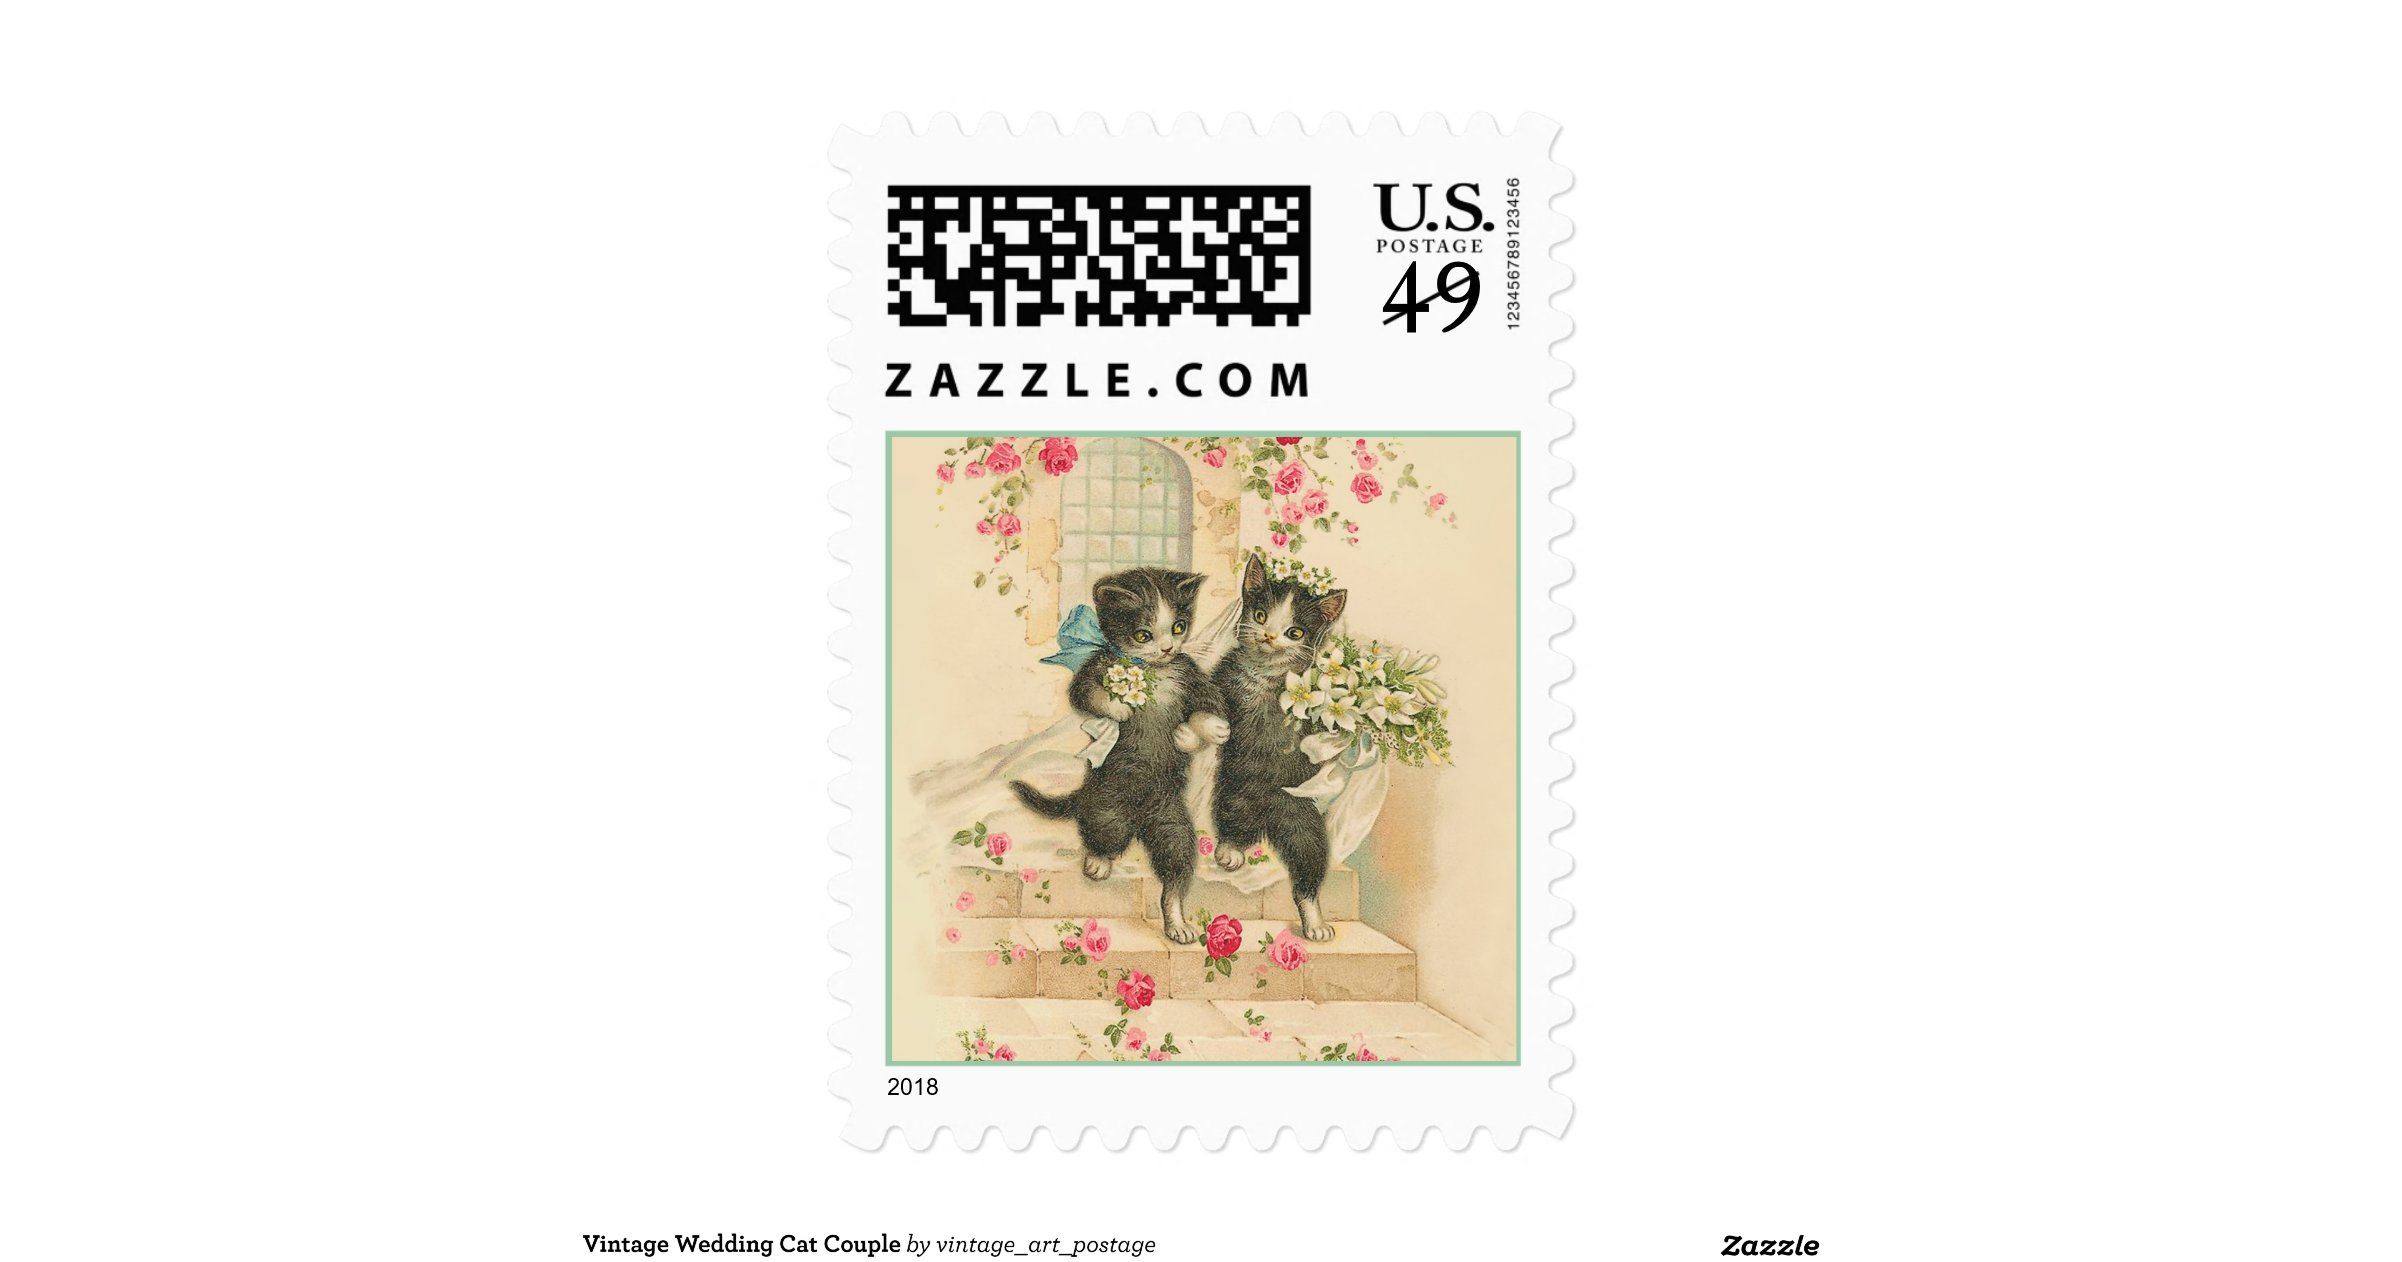 Vintage Wedding Cat Couple Stamp Rbf2762362e78452e8b9b88bcd2502173 Zhgfs 8byvr 1200view